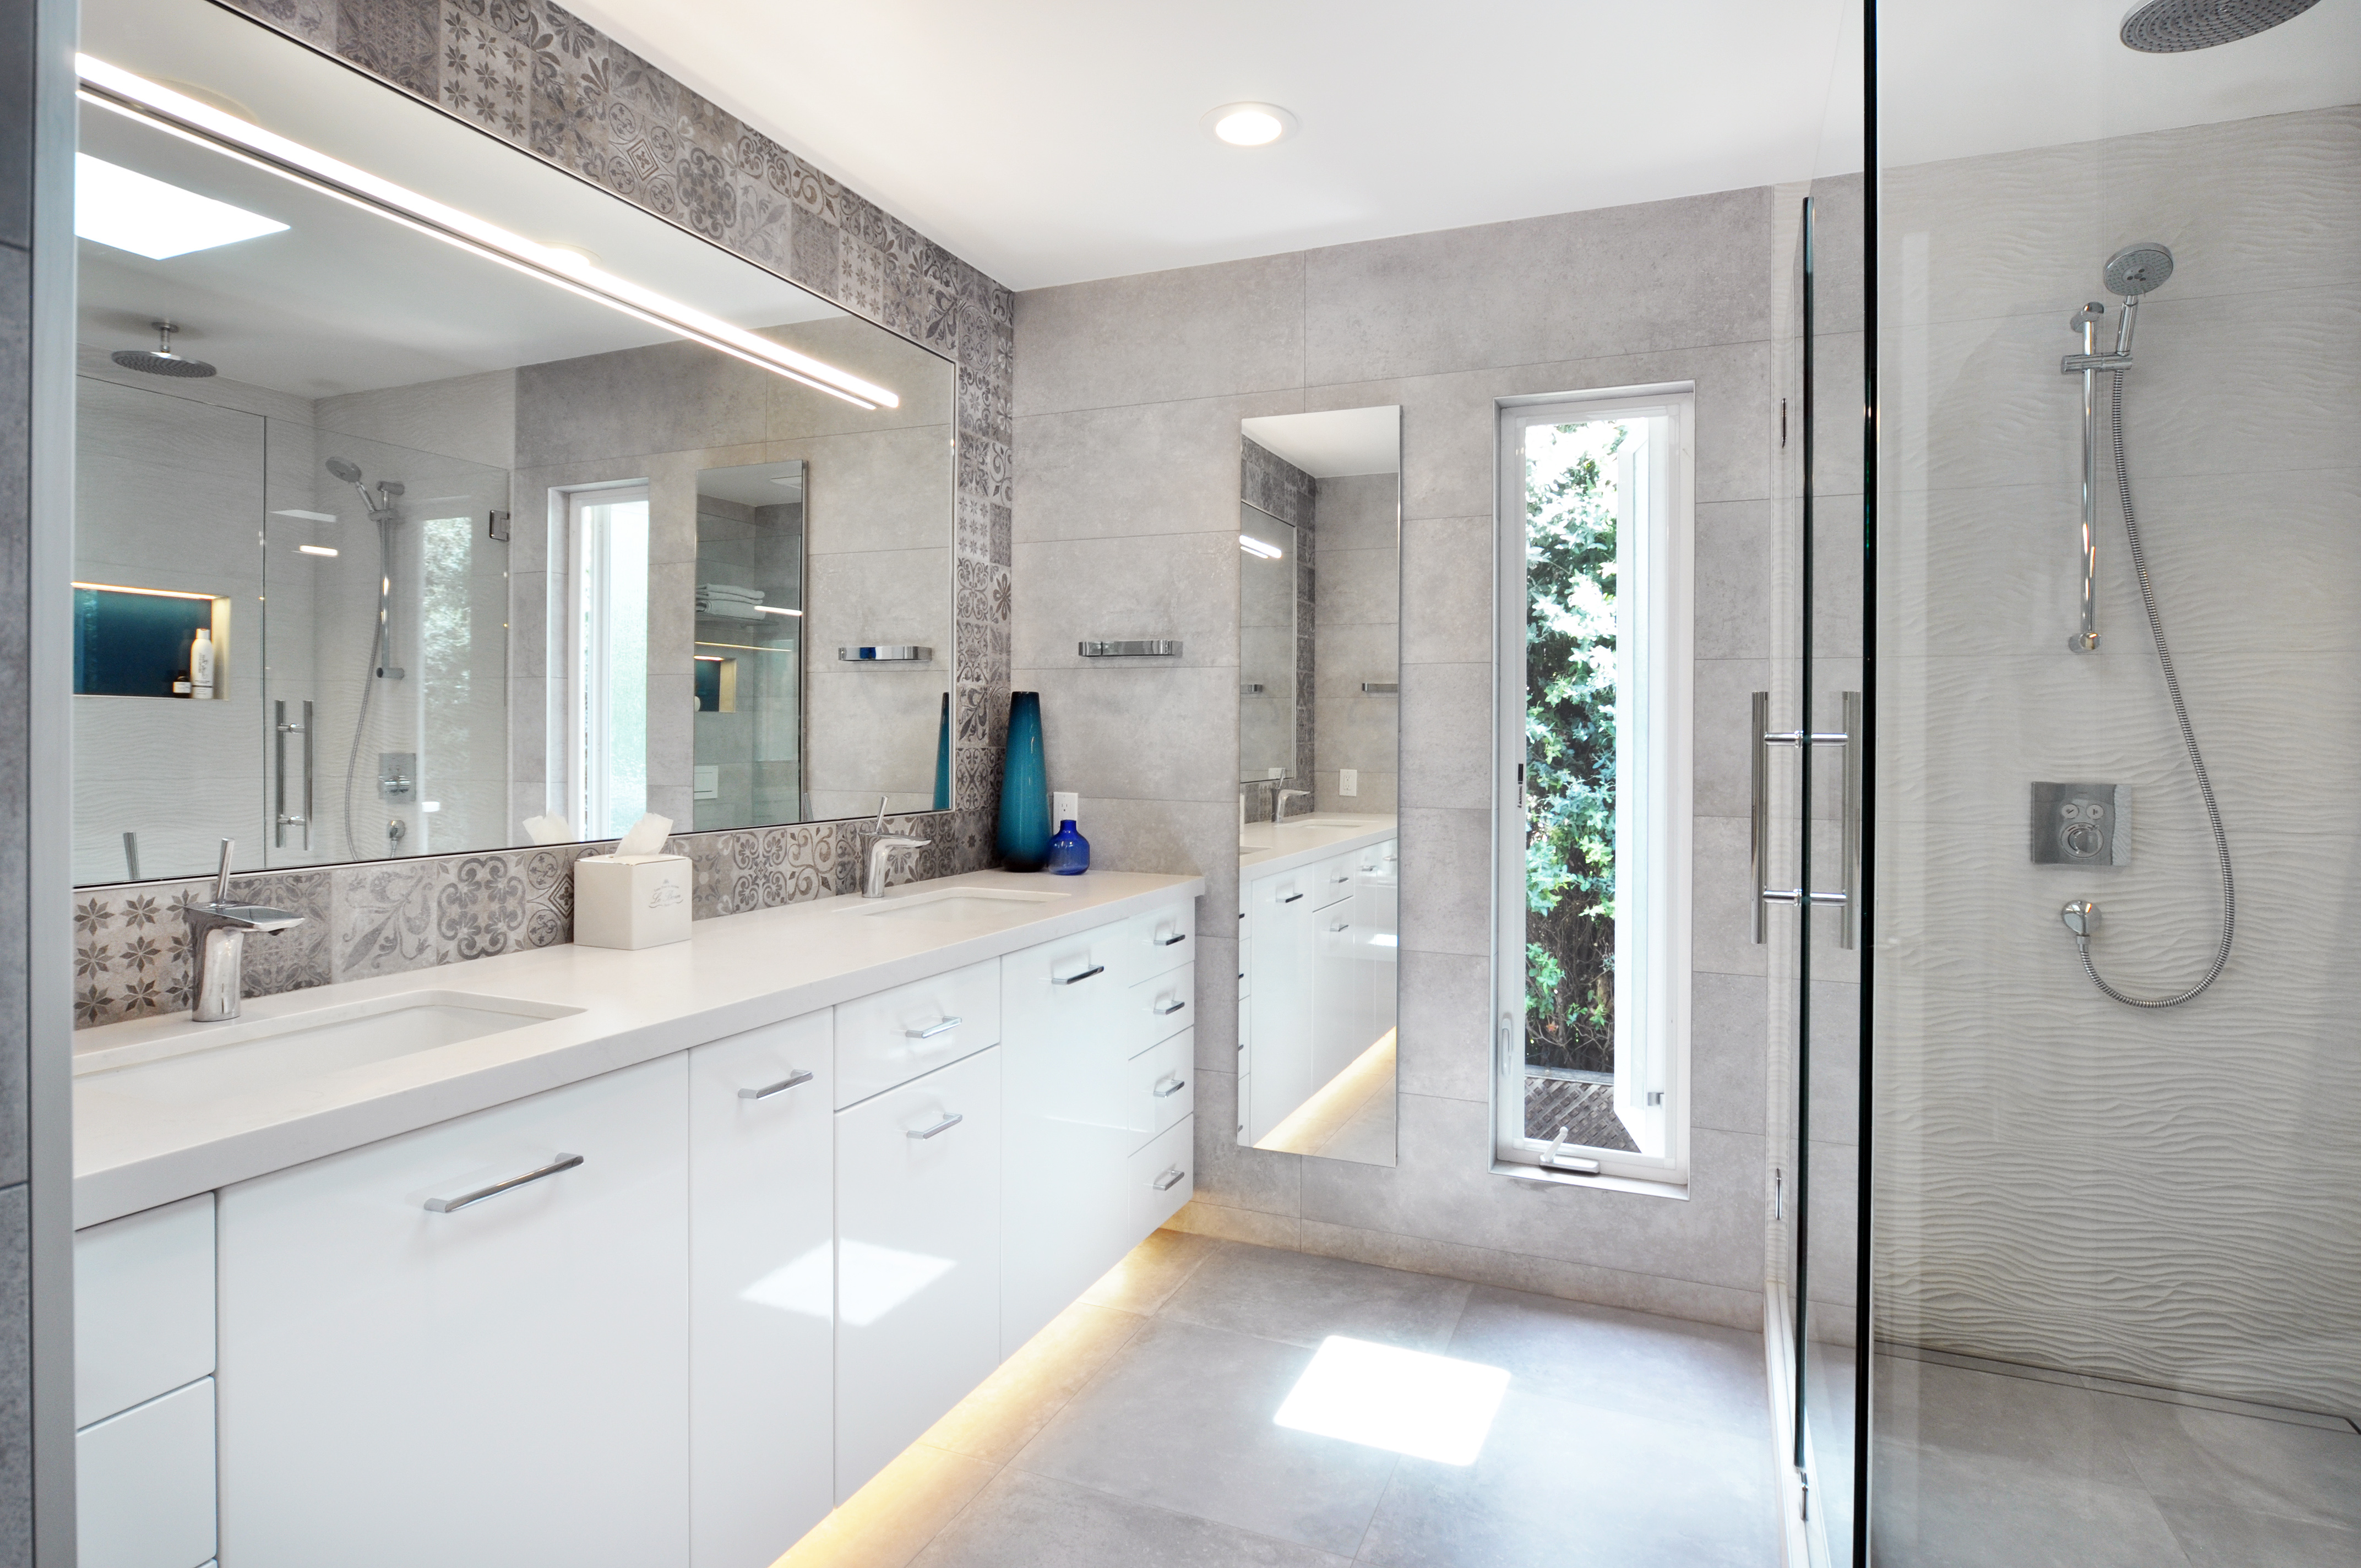 Glossy white cabinets, gray tile